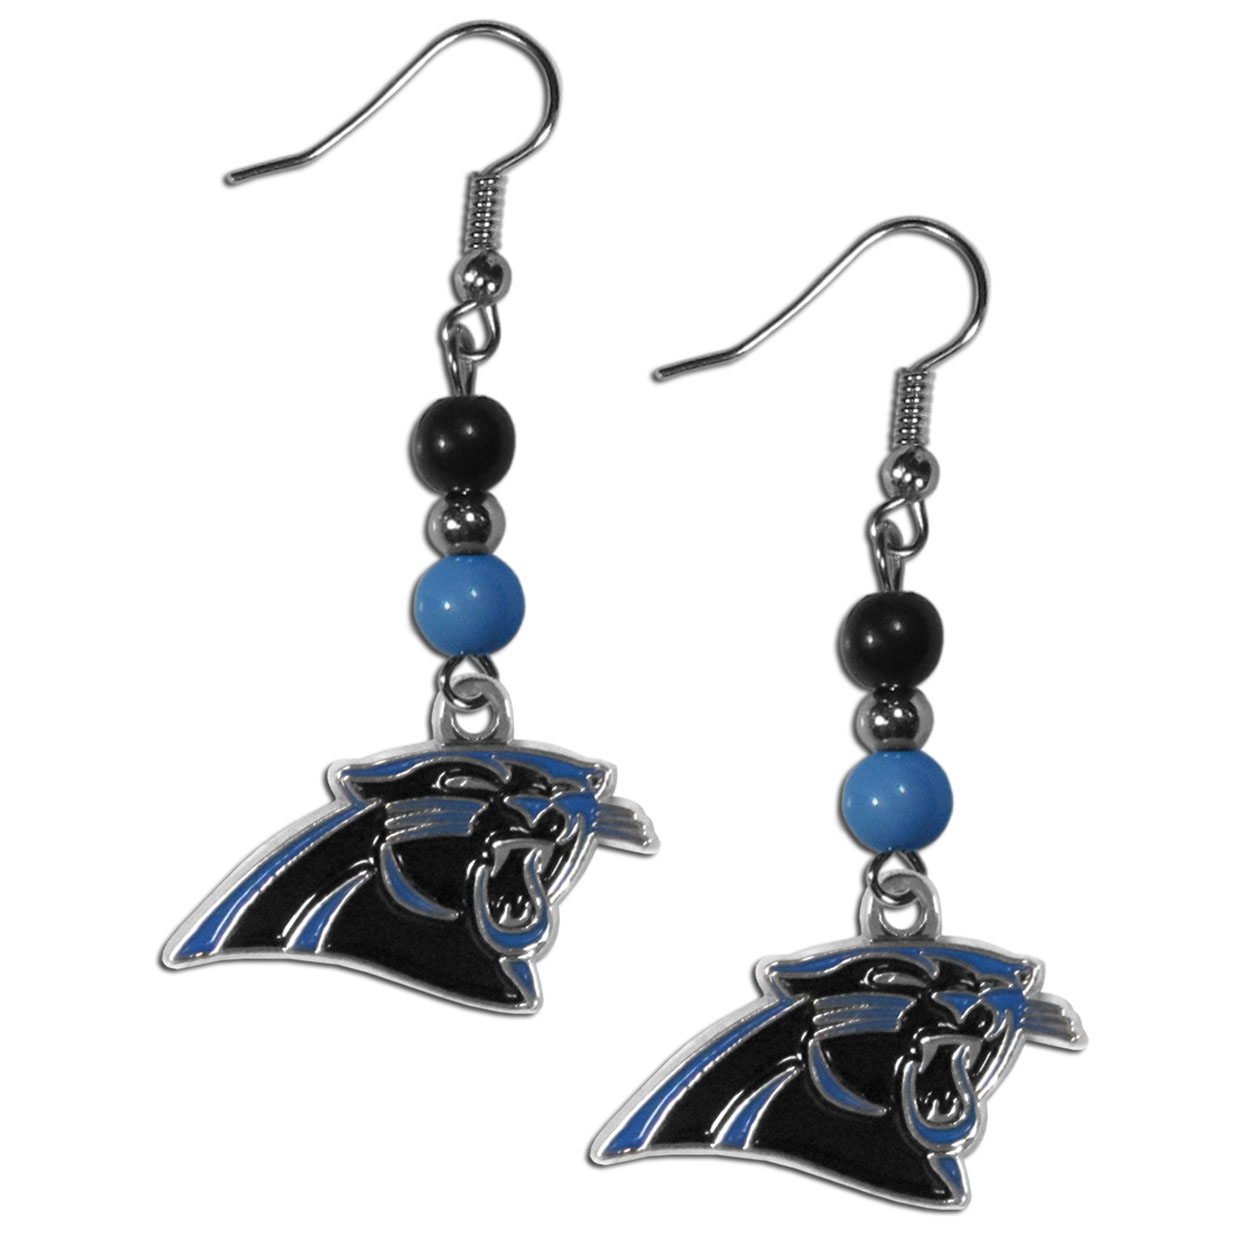 Carolina Panthers Fan Bead Dangle Earrings - Love your team, show it off with our Carolina Panthers bead dangle earrings! These super cute earrings hang approximately 2 inches and features 2 team colored beads and a high polish team charm. A must have for game day!